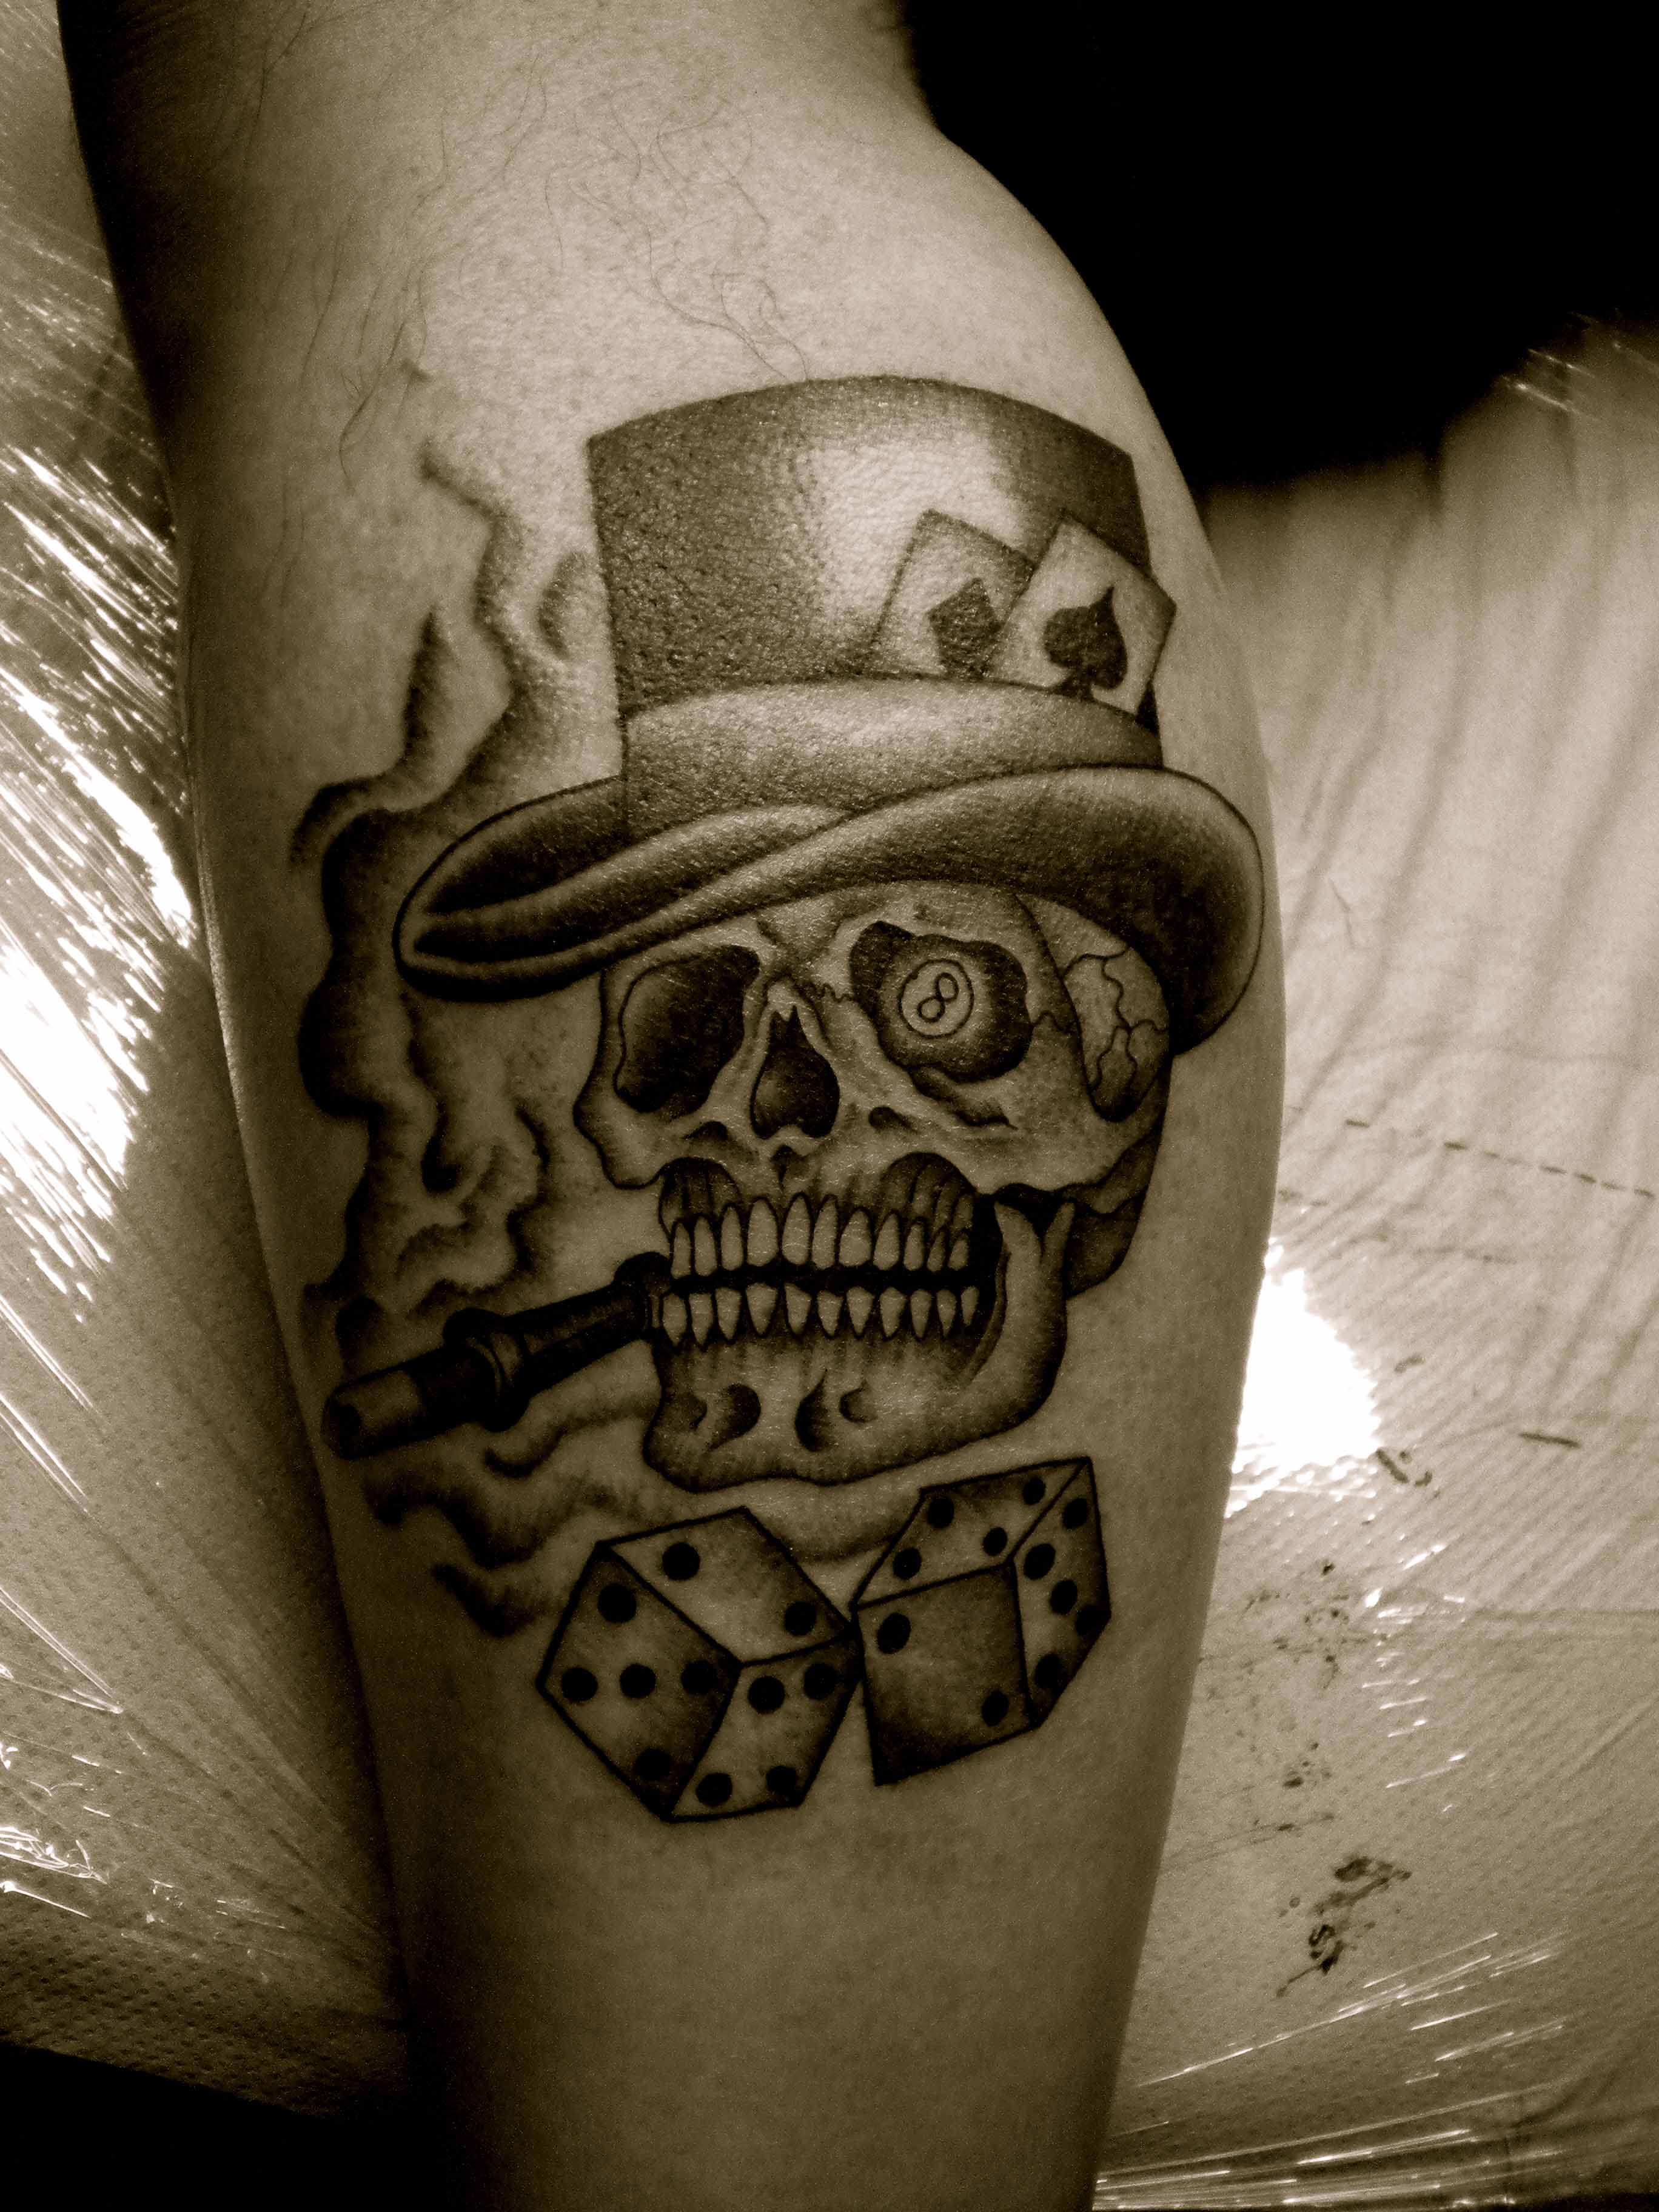 Dice Tattoo Images  - 1312 Tattoo